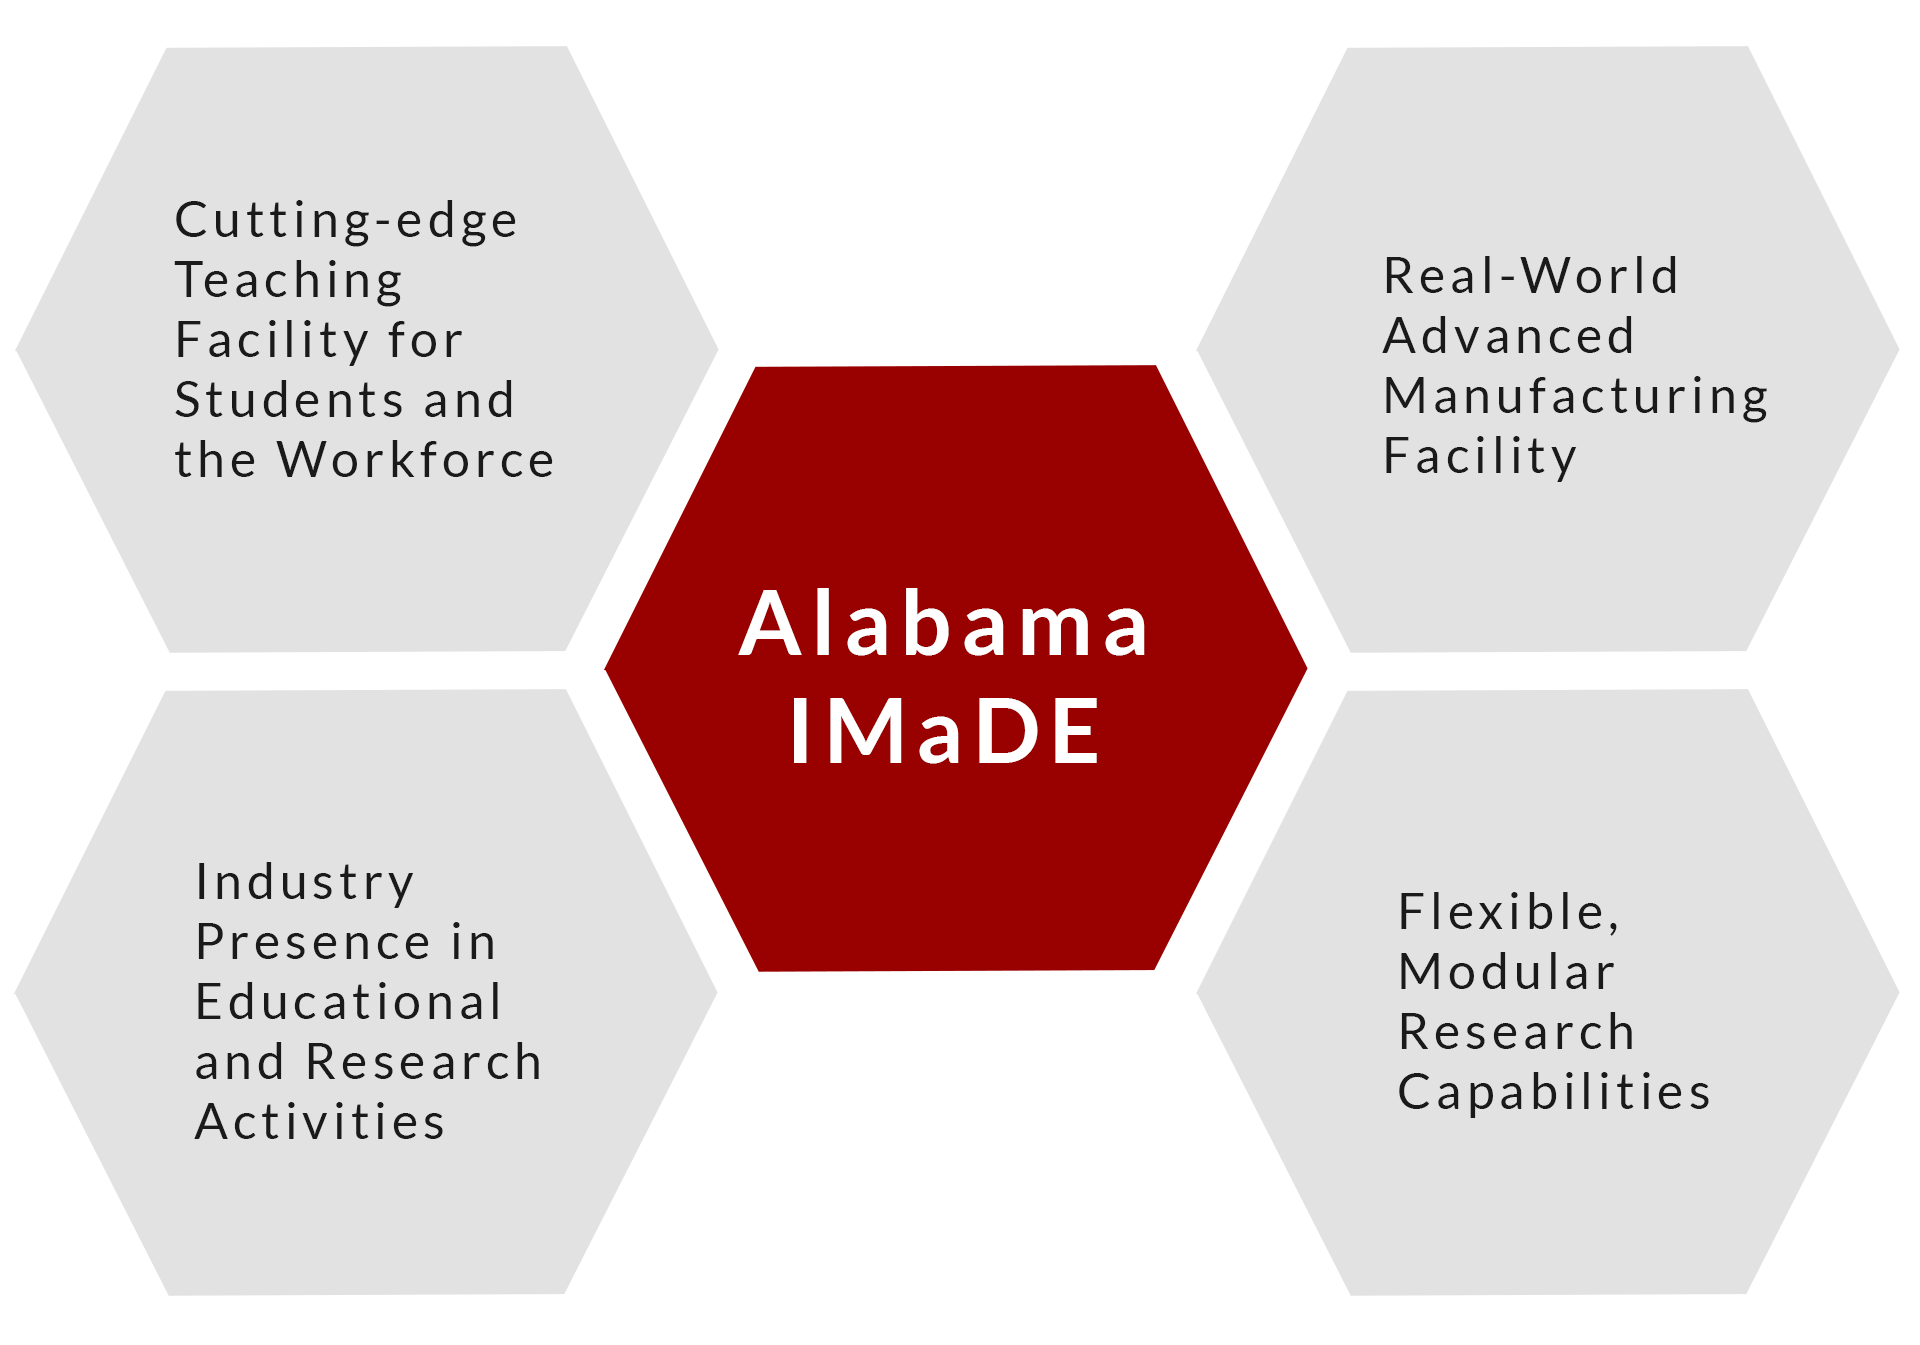 Text chart with hexagons reading: Cutting-edge Teaching Facility for Students and the Workforce; Real-World Advanced Manufacturing Facility; Flexible, Modualr Research Capabilities; Industry Presence in Educational and Research Activities; Alabama IMaDE.